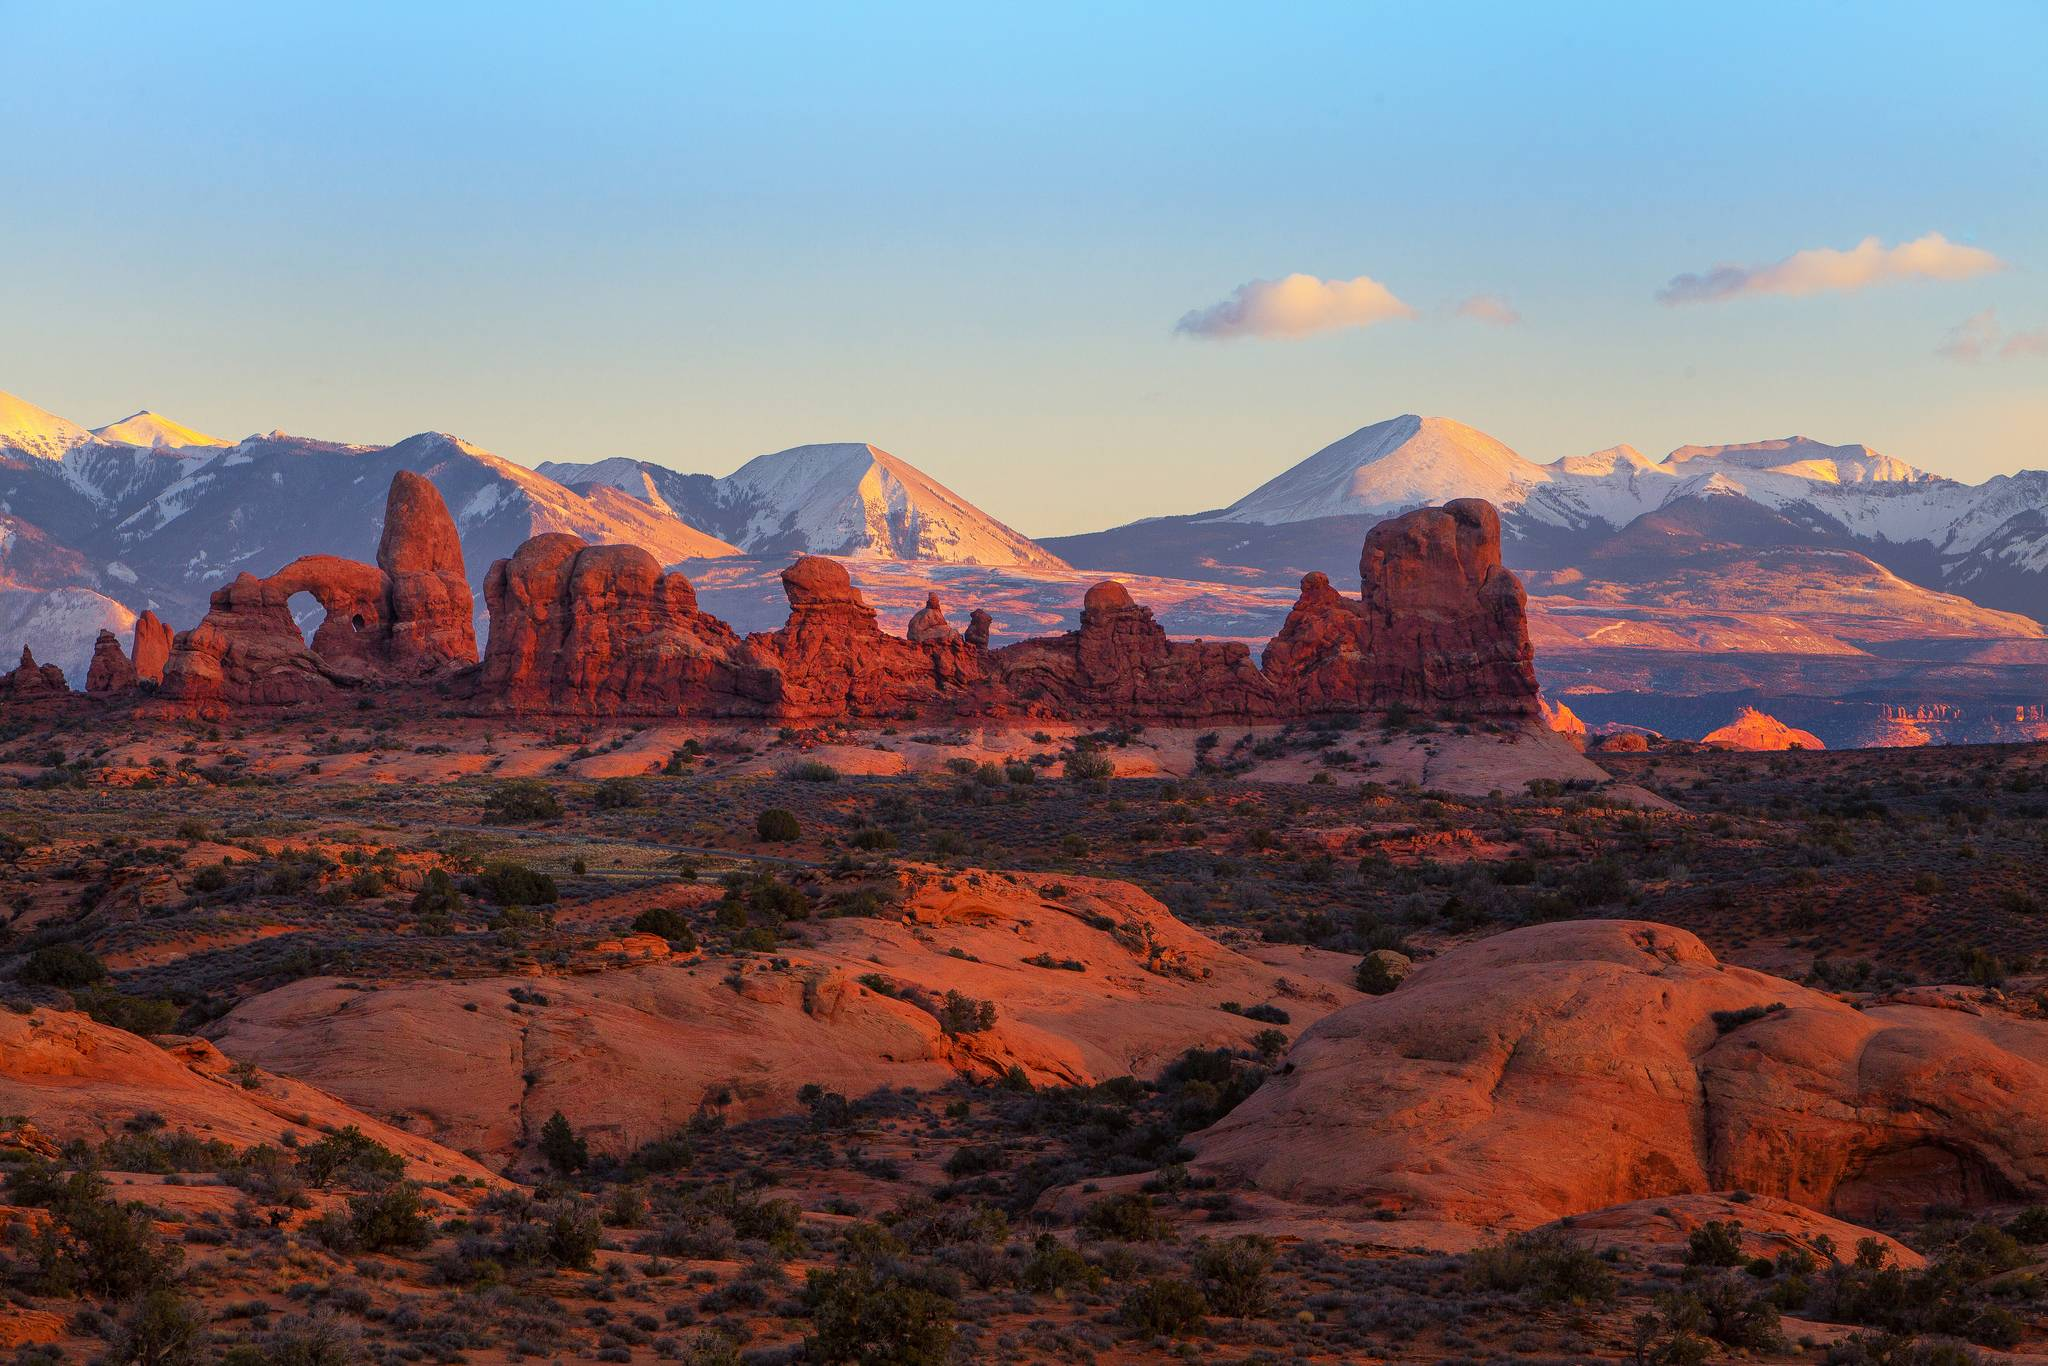 Download wallpapers Utah, Arches National Park, tower arch